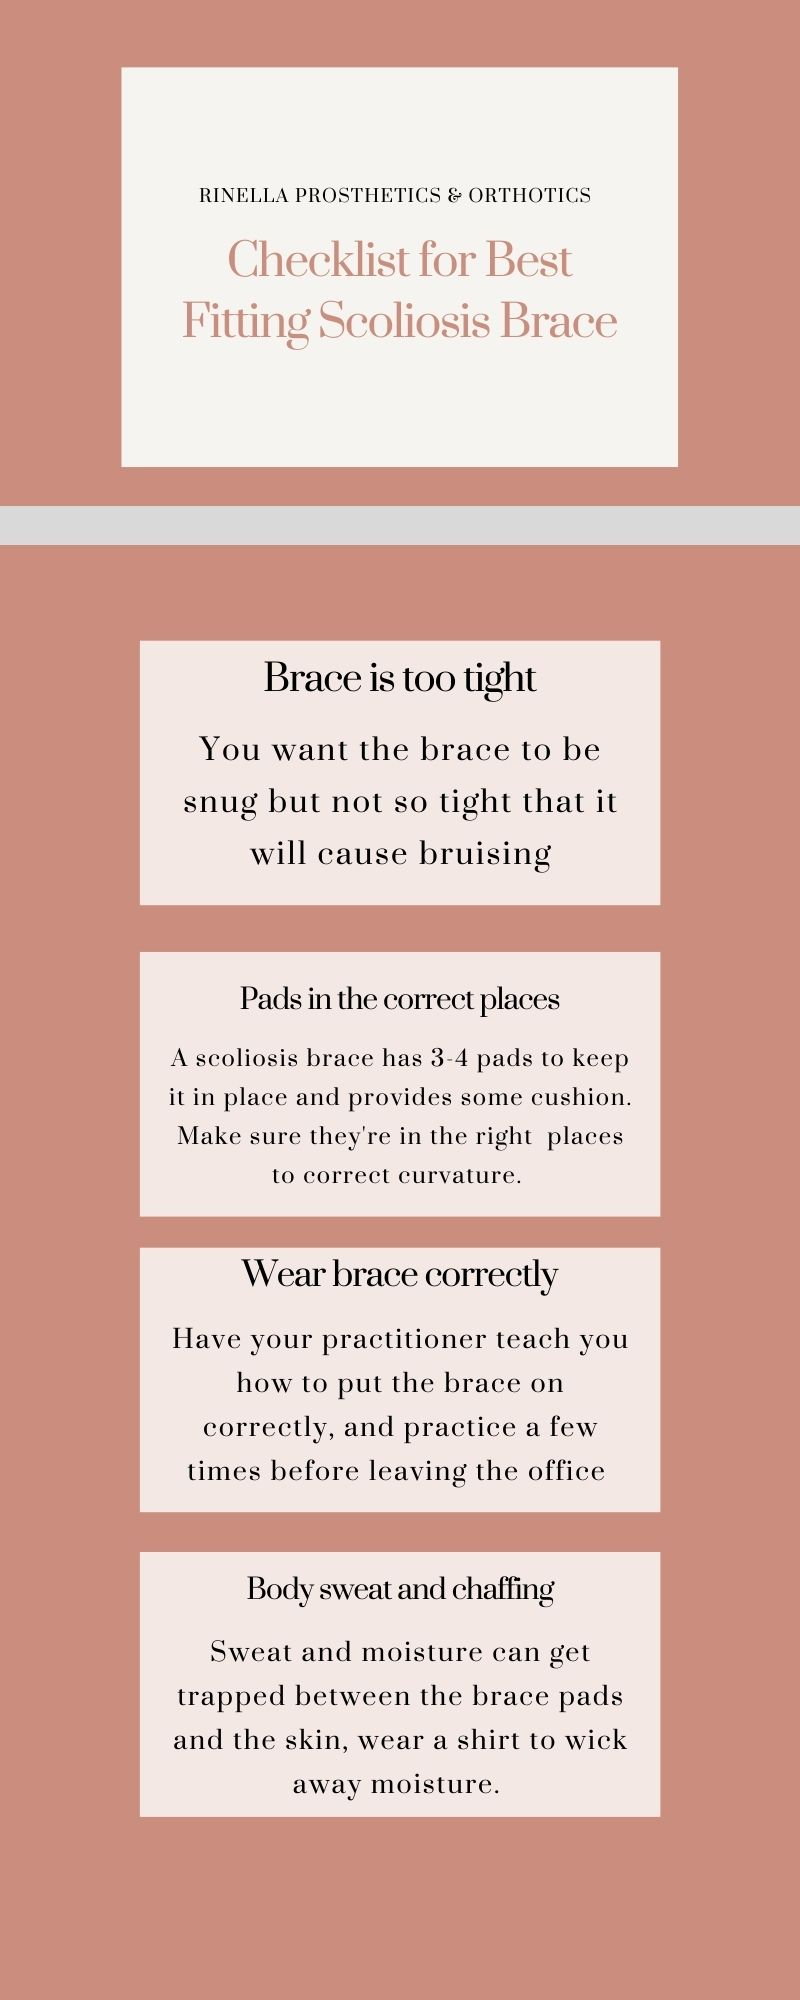 how to wear scoliosis brace